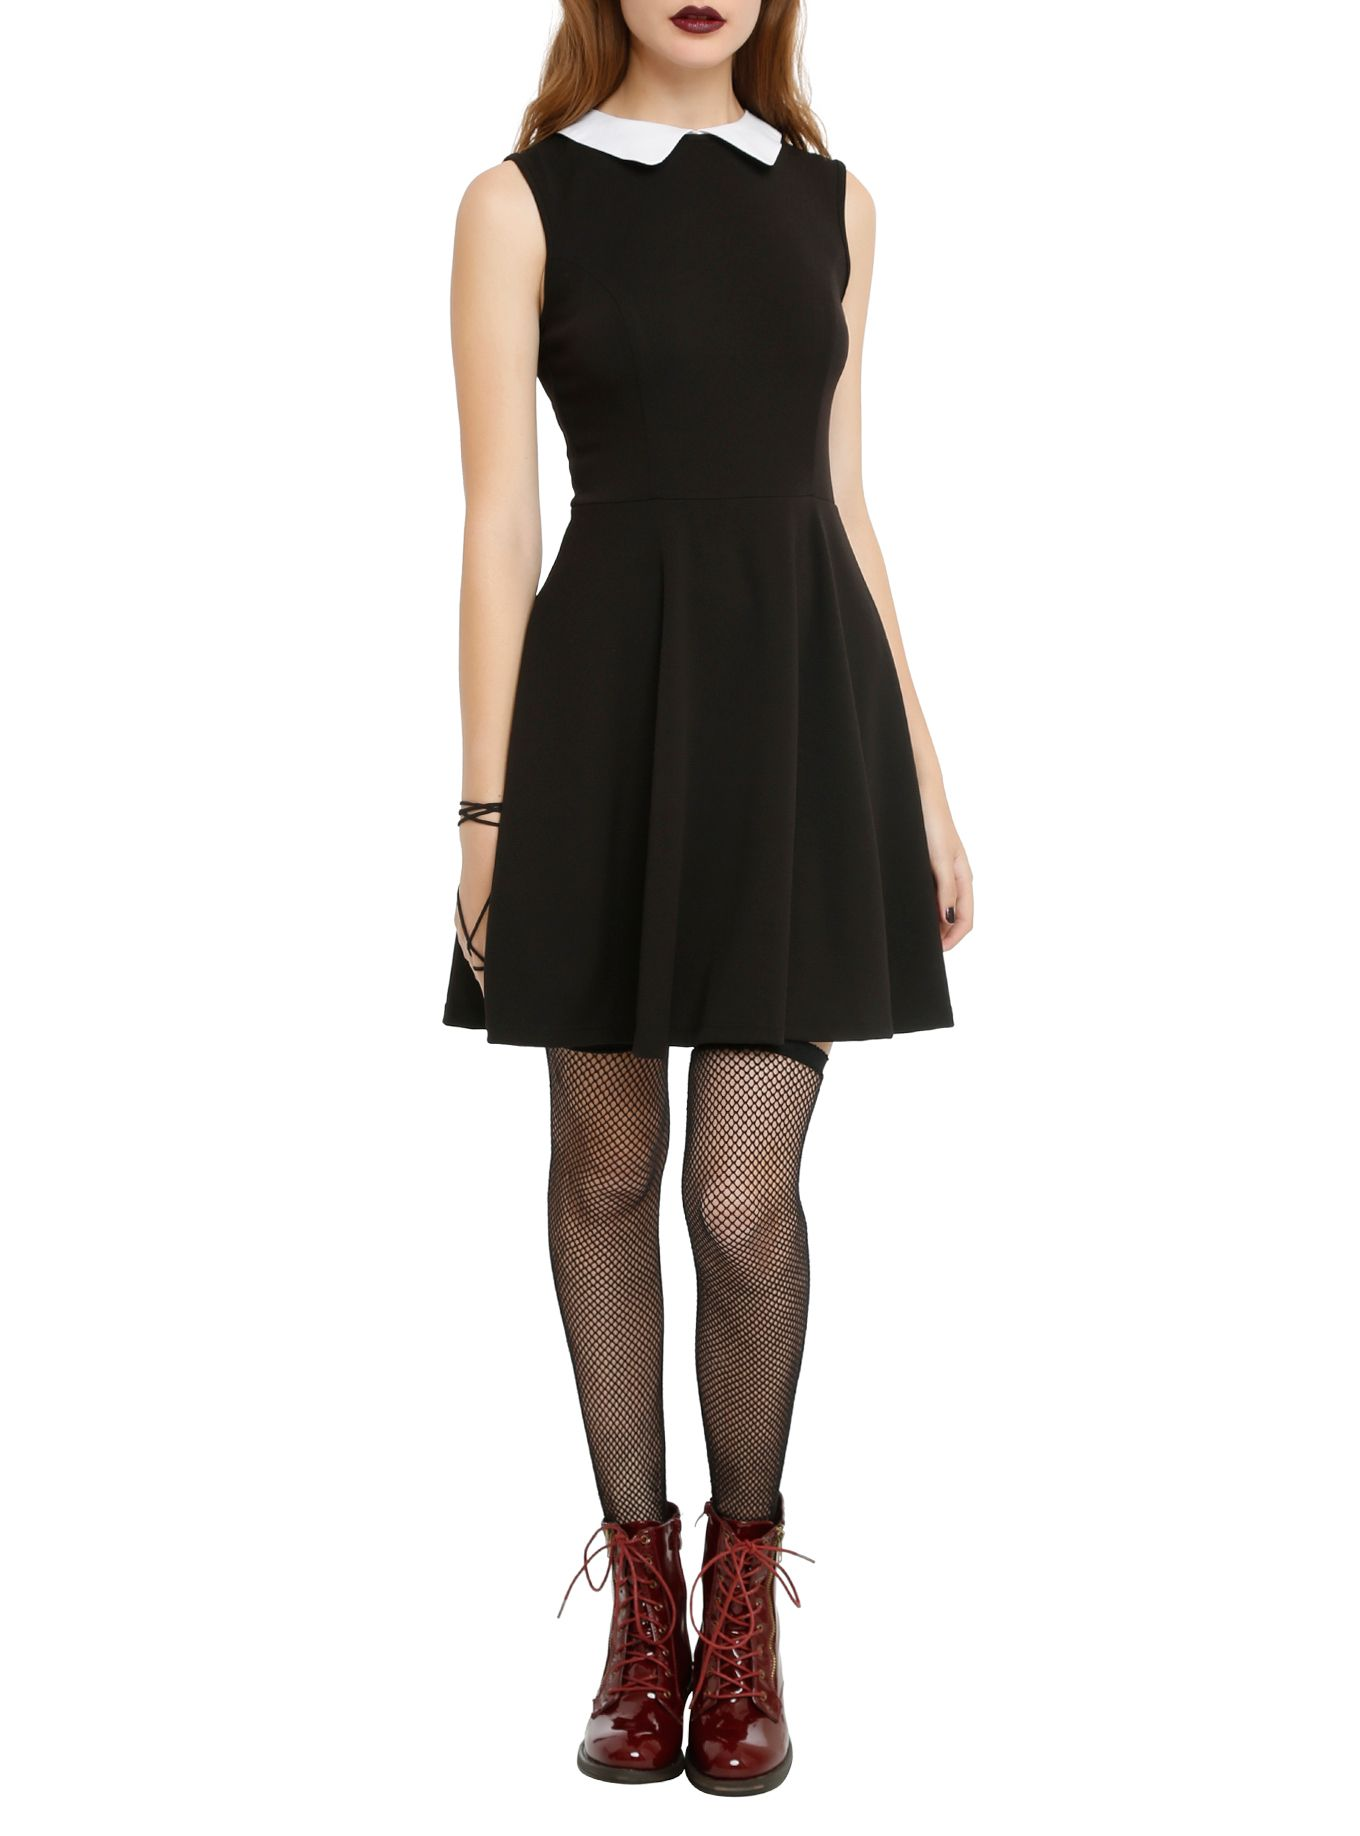 Black dress with white peter pan collar - Com Black White Collar Dress This Is More Like My Style And Wanted In High School Would Look Great W My Doc Martens